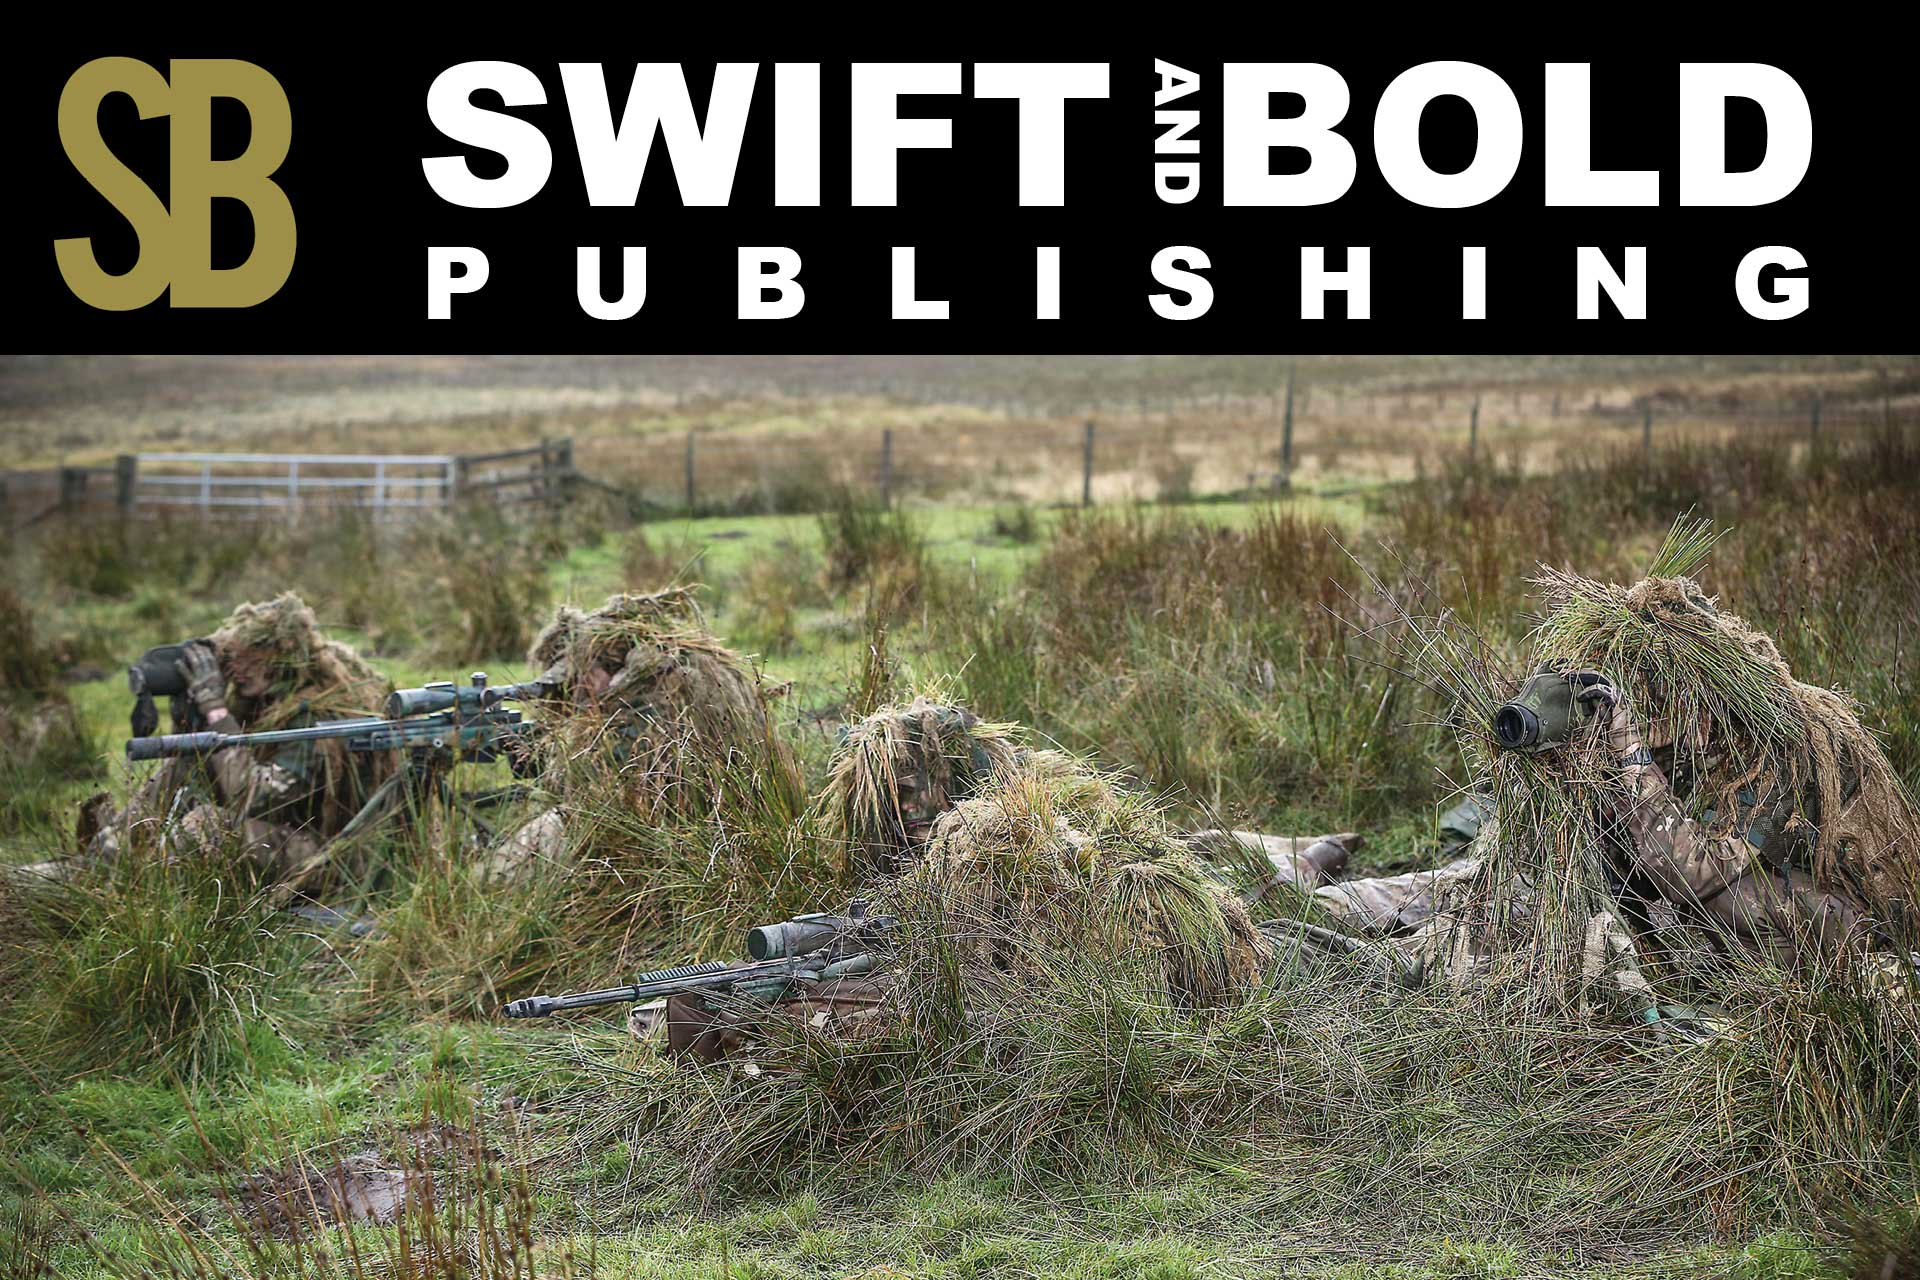 The British sniper - Swift & Bold Publishing